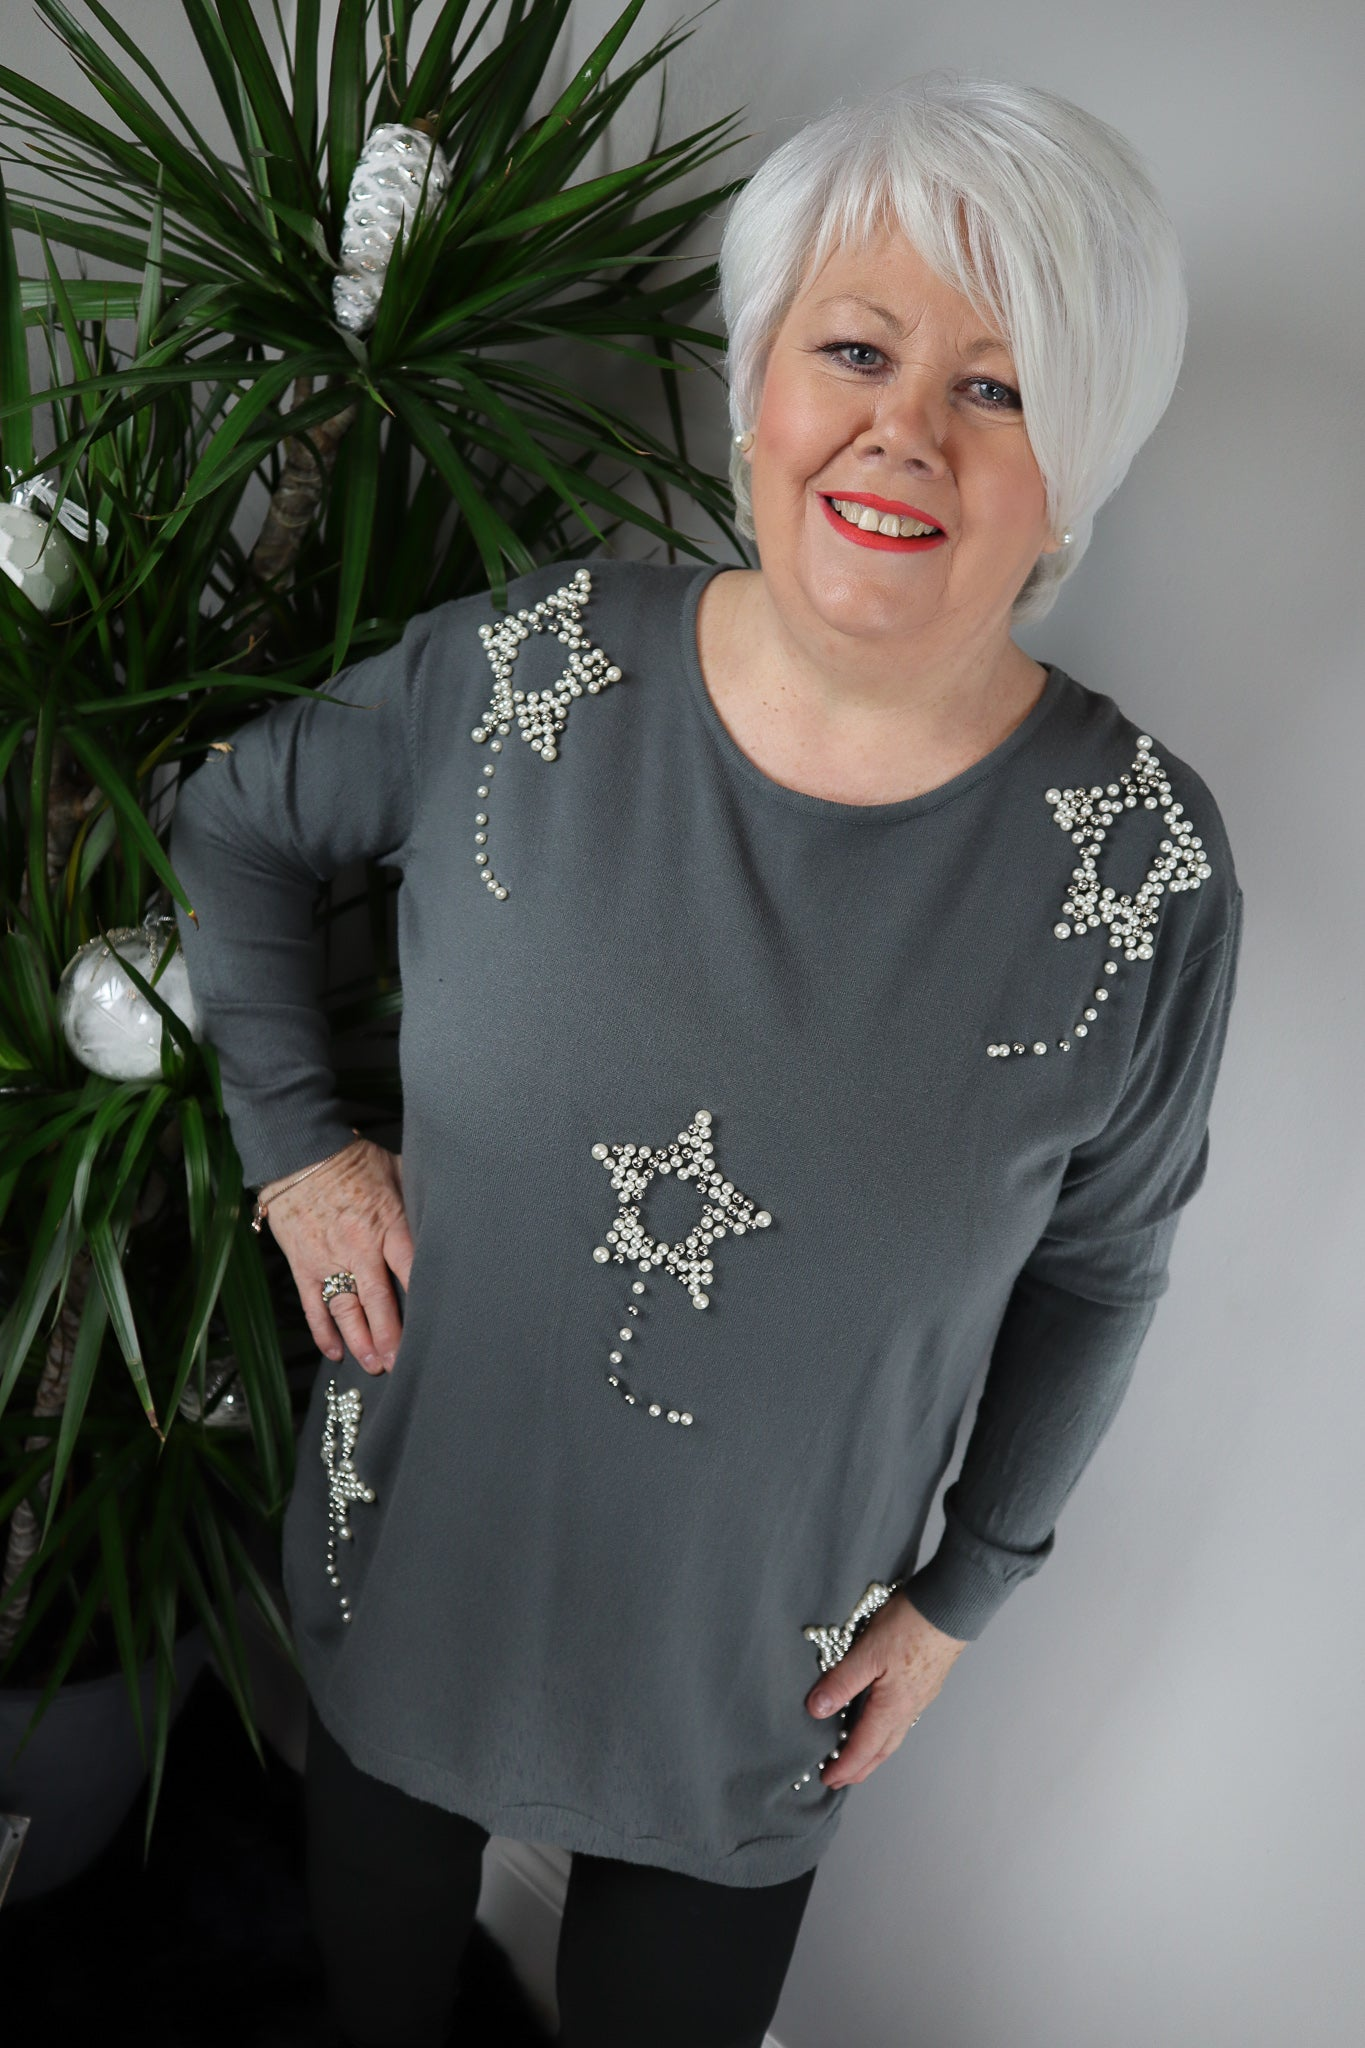 Charlene Beaded Star Jumper